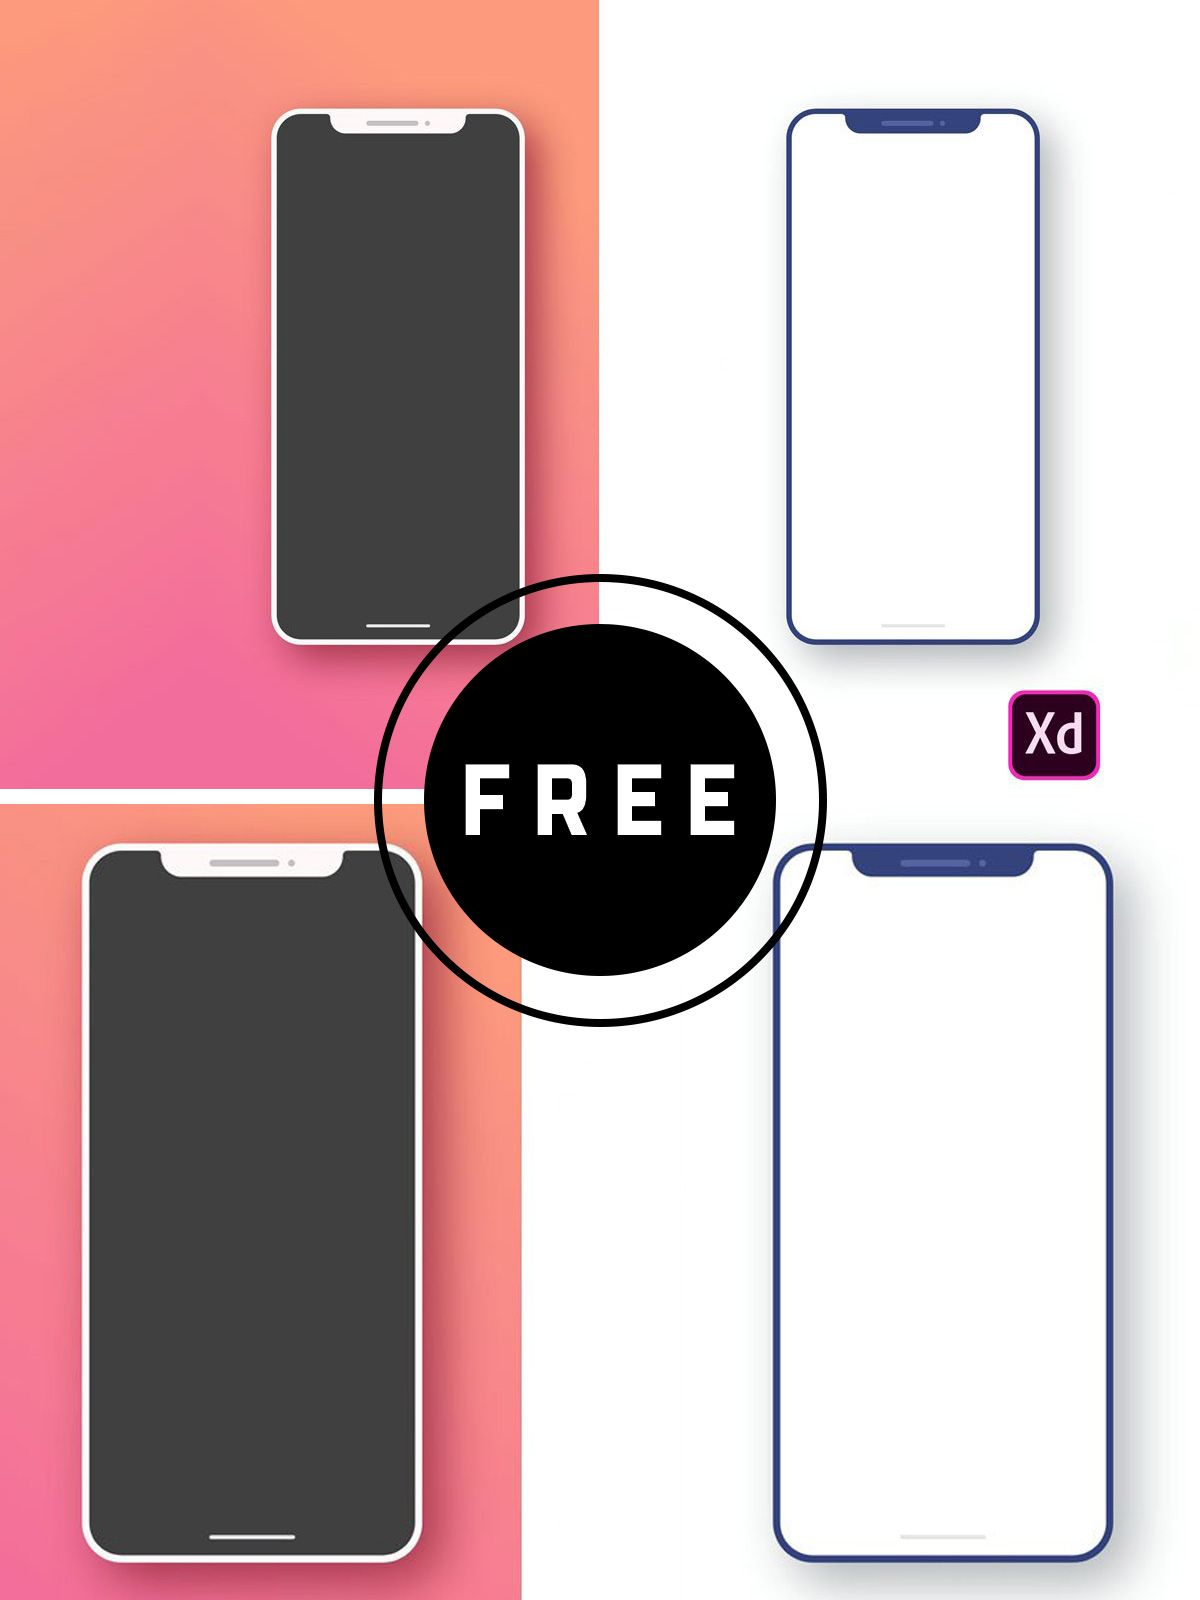 75 Best Free Iphone X Iphone Xs Iphone Xs Max Iphone Xr Mockups In 2021 Iphone Mockup Free Iphone Iphone